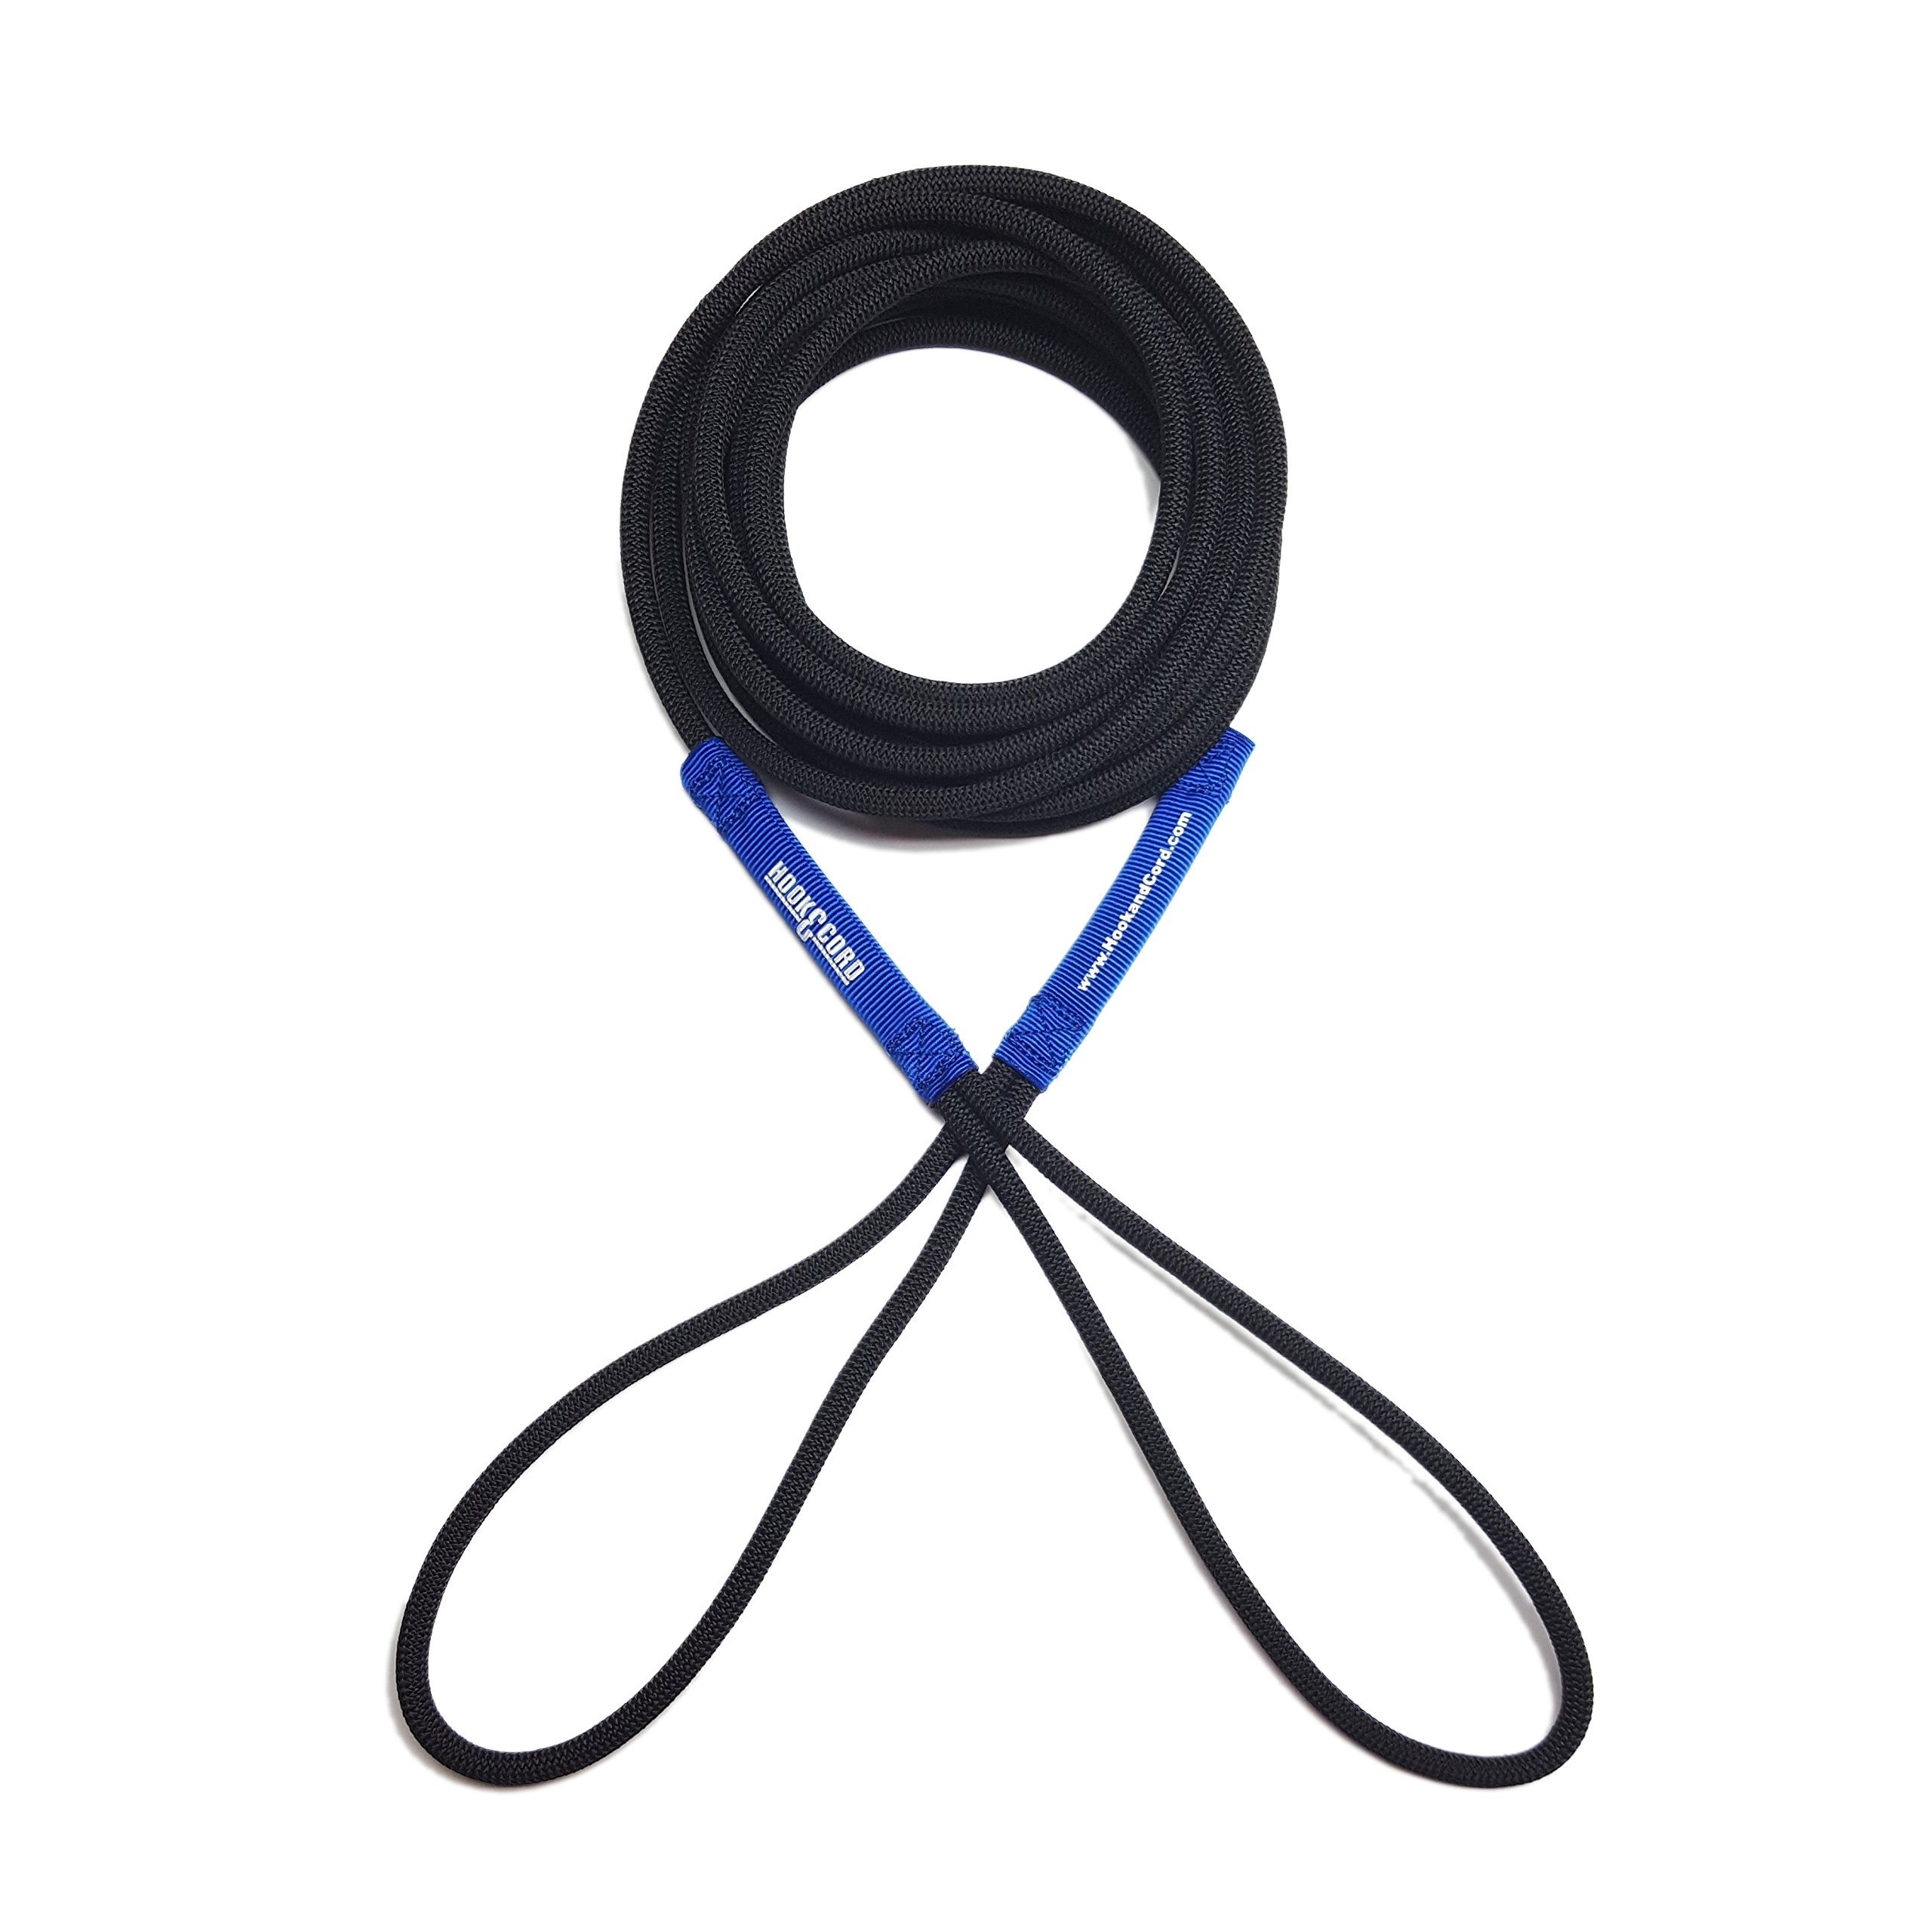 Boat Line Rope Bungee Cord 15' Line, Stretches to 30', Heavy Duty Boat Line, Used for Launching/Retrieving Boats (Blue, 15 feet)